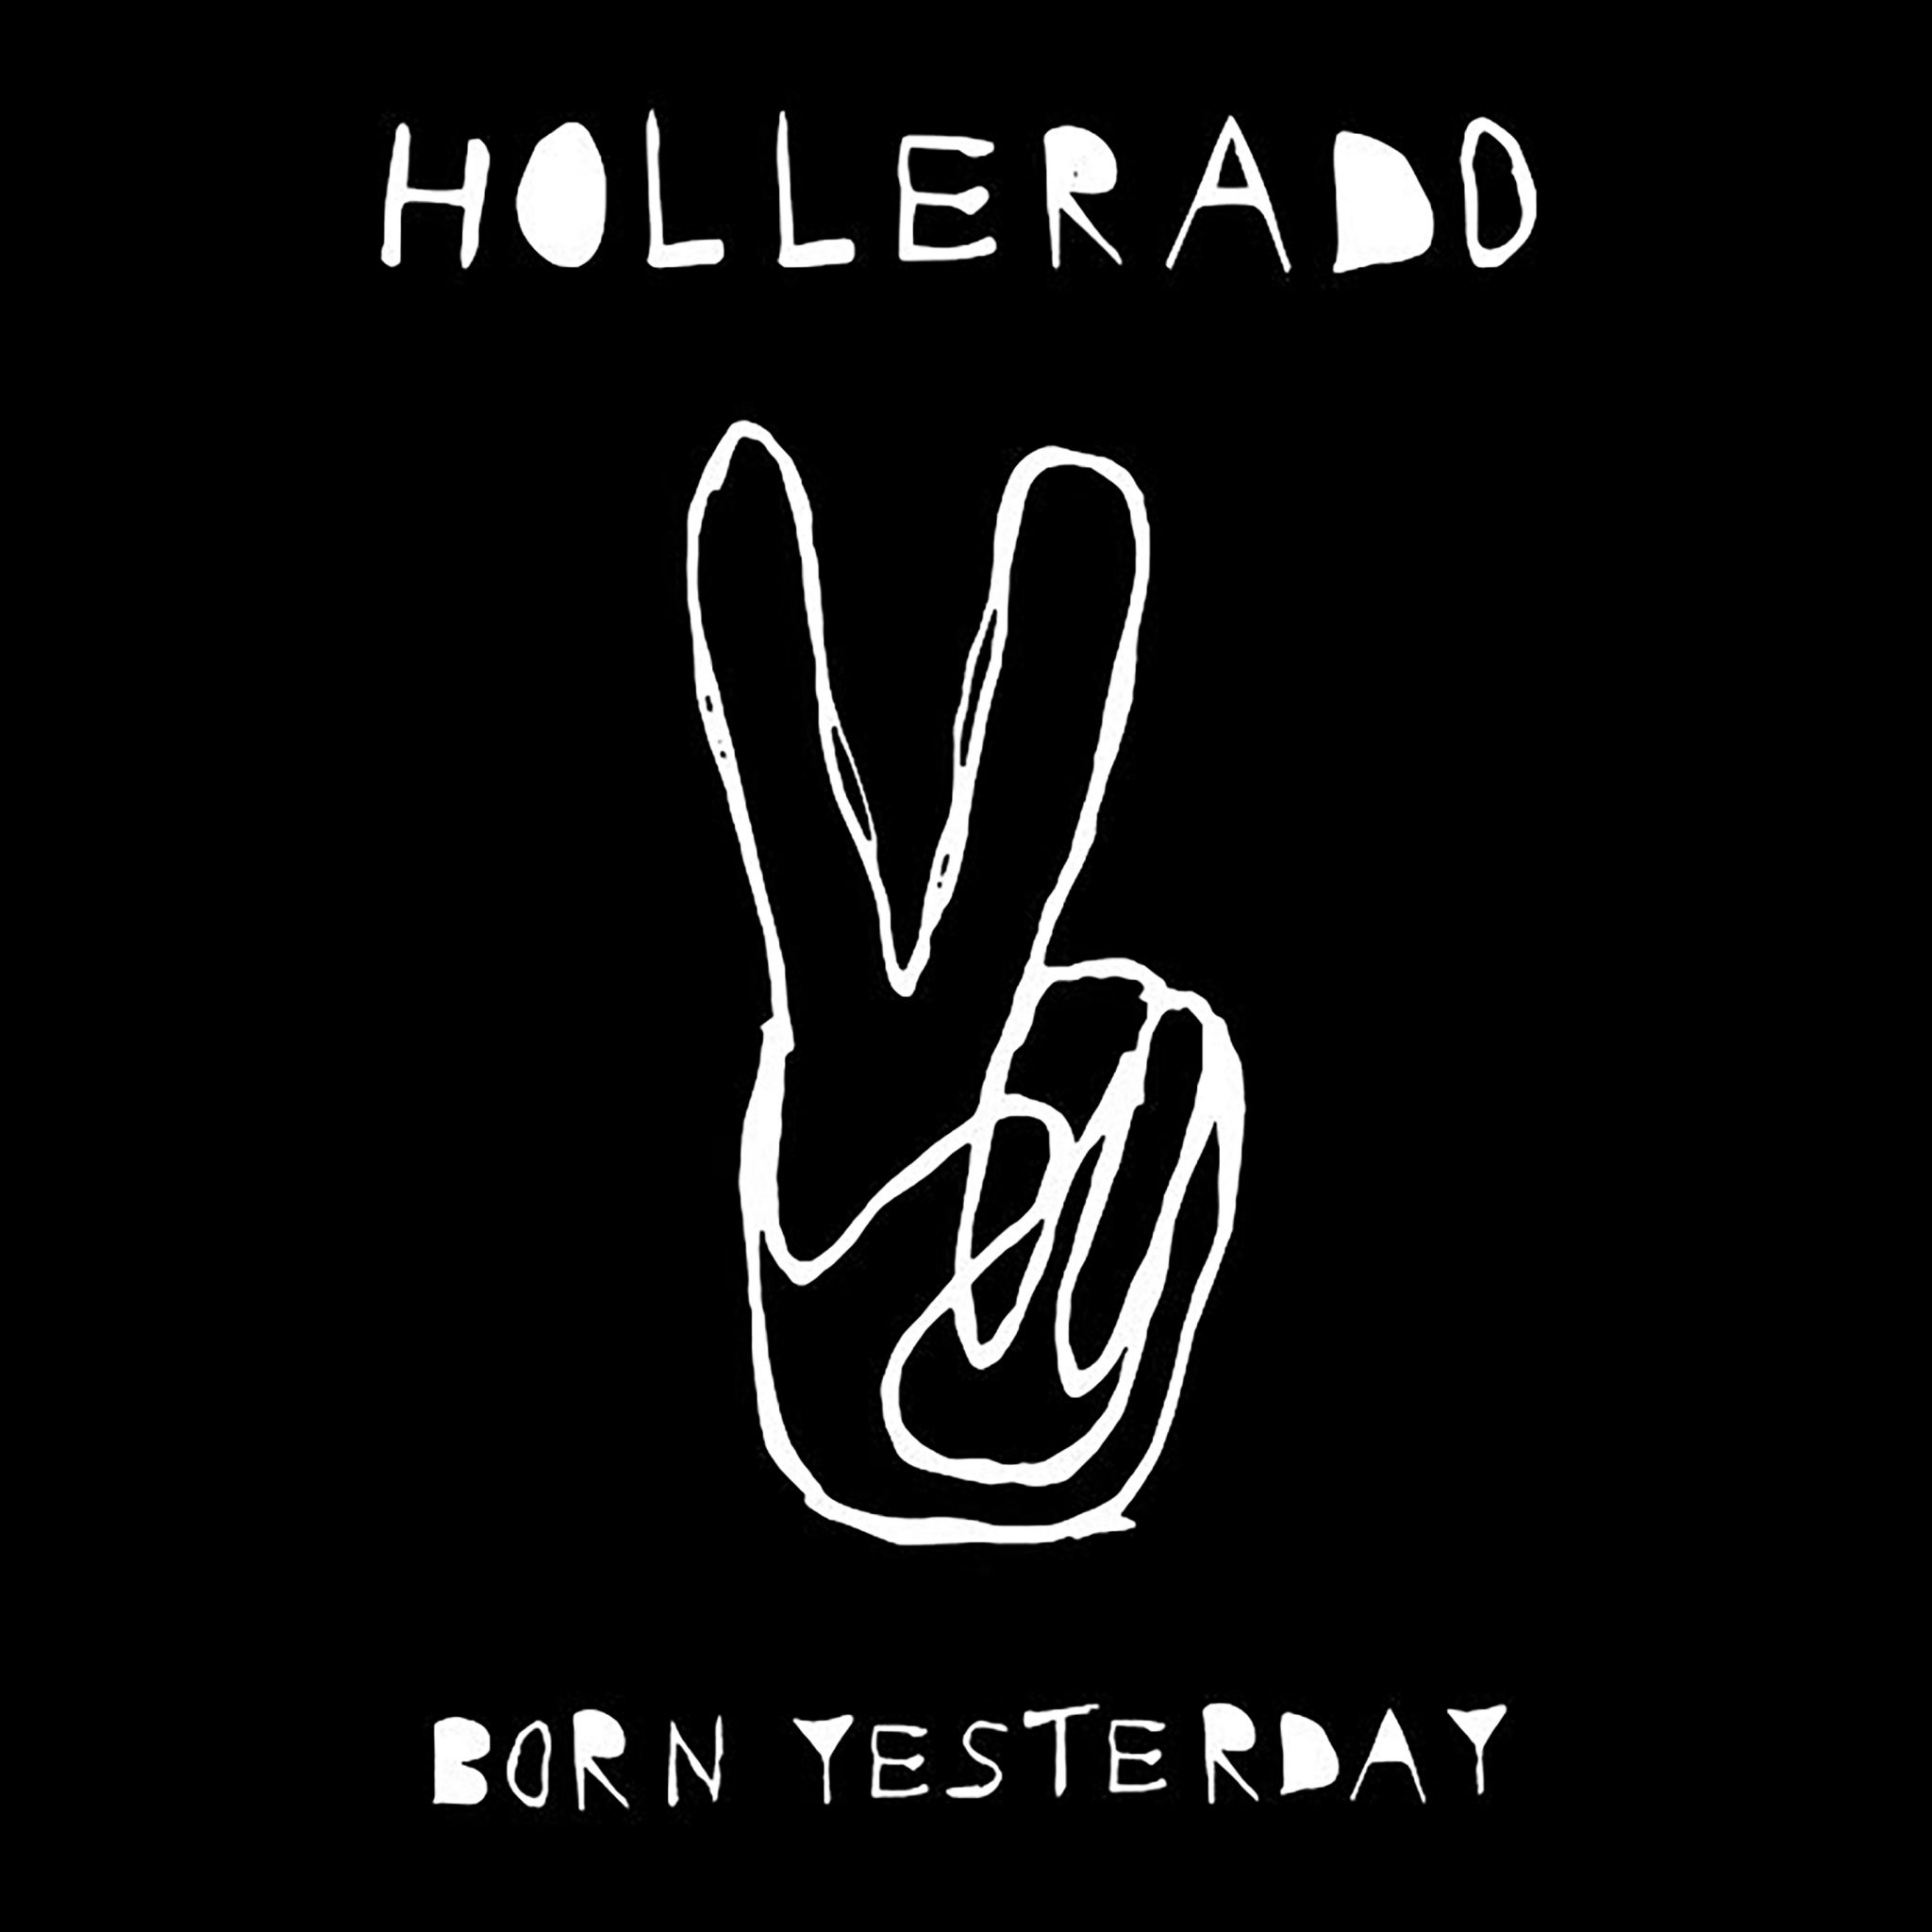 Hollerado Born Yesterday